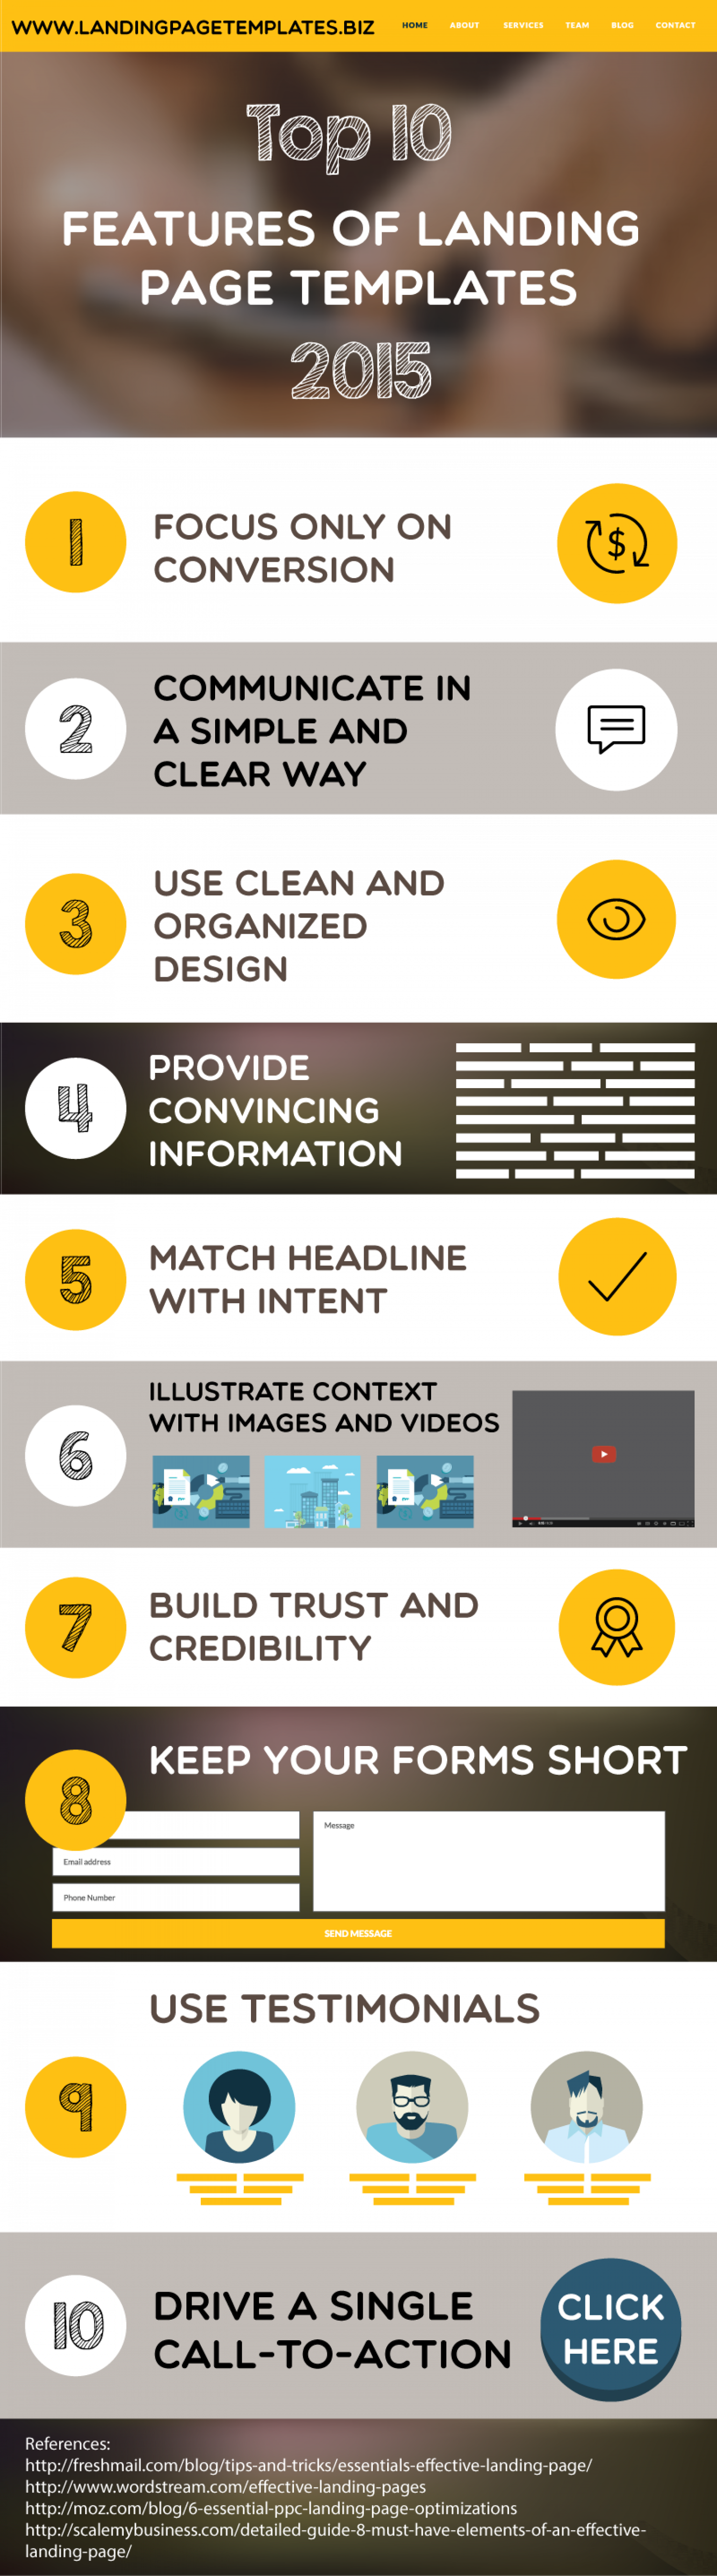 Top 10 Features of Landing Page Templates 2015 Infographic